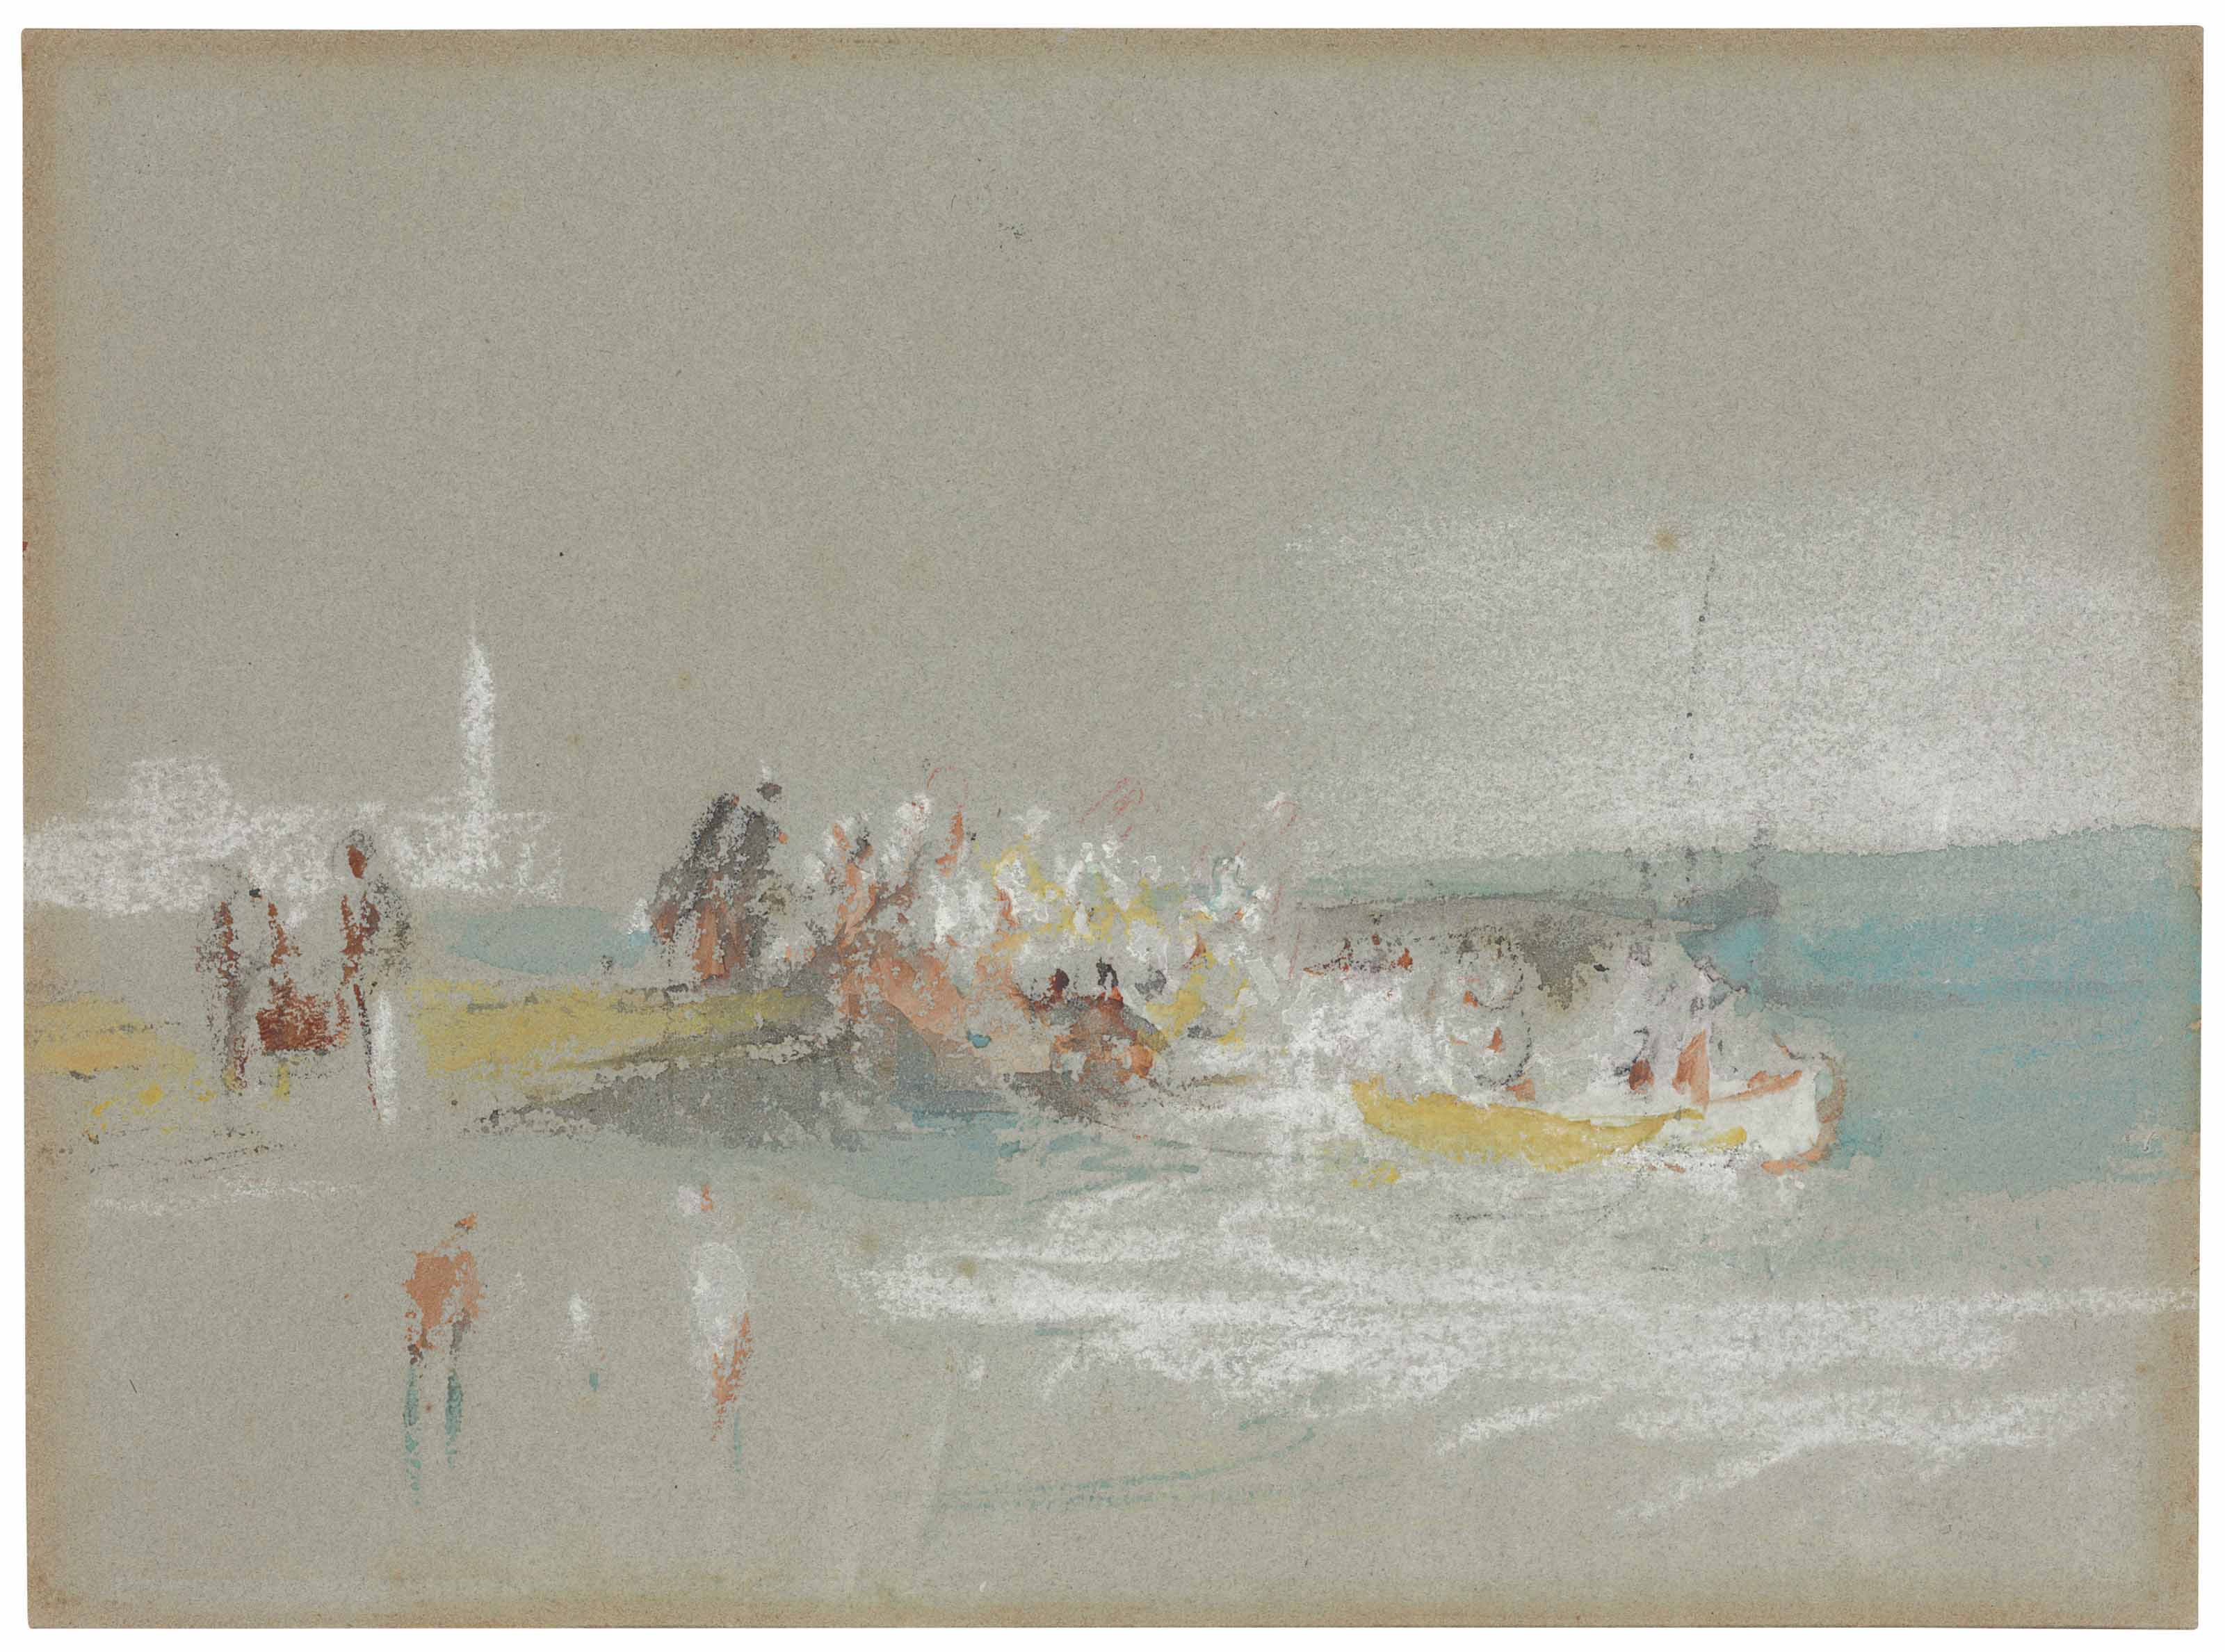 Joseph Mallord William Turner, R.A. (London 1775-1851), Figures by the shore at Margate. 5¼ x 7¼  in (13.6 x 18.4 cm). This lot was offered in Old Master & British Drawings on 30 January 2018  at Christie's in New York and sold for $137,500